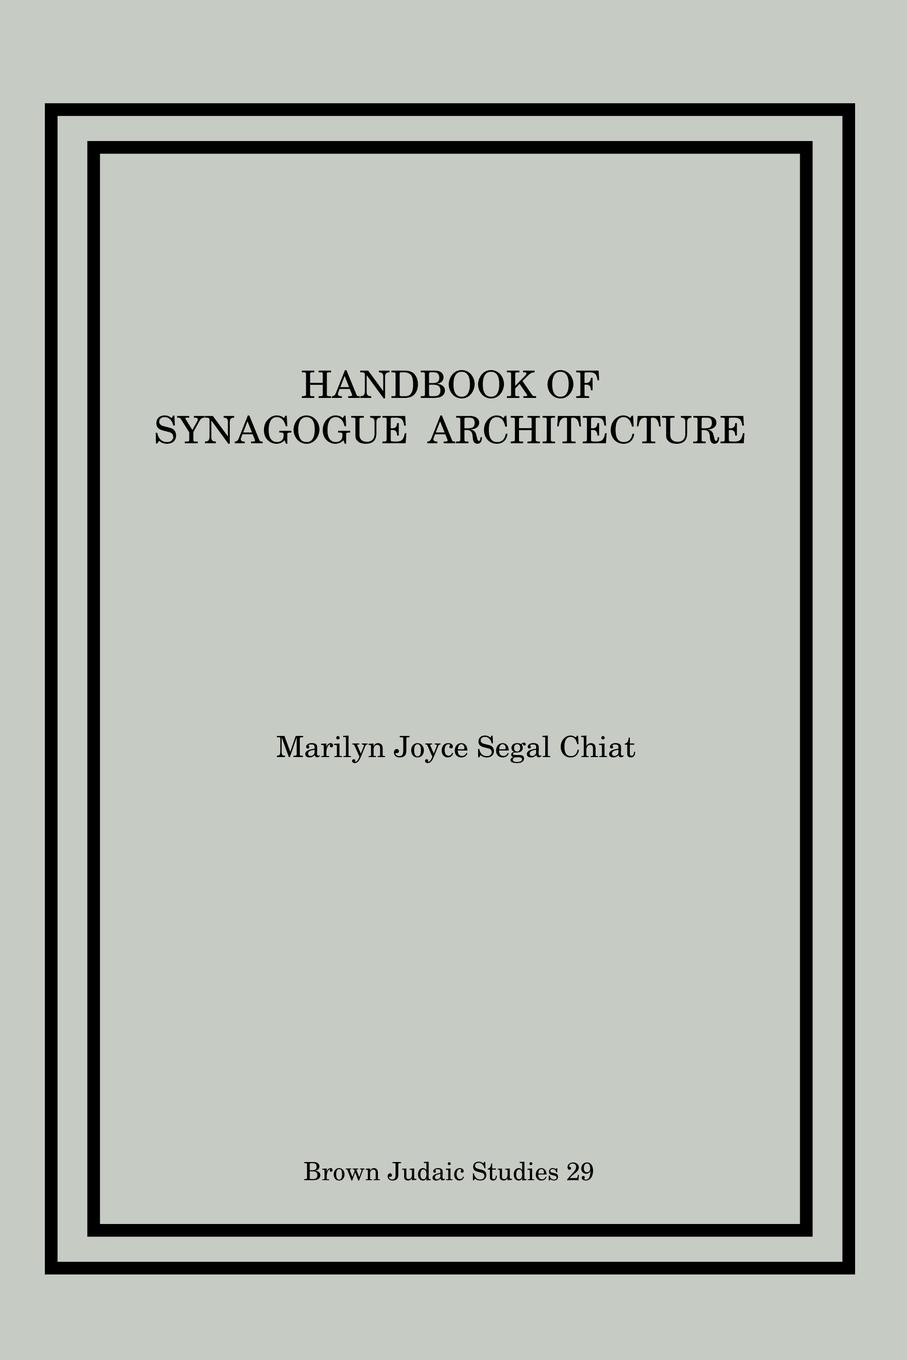 Marilyn Joyce Segal Chiat Handbook of Synagogue Architecture 100 years of architecture